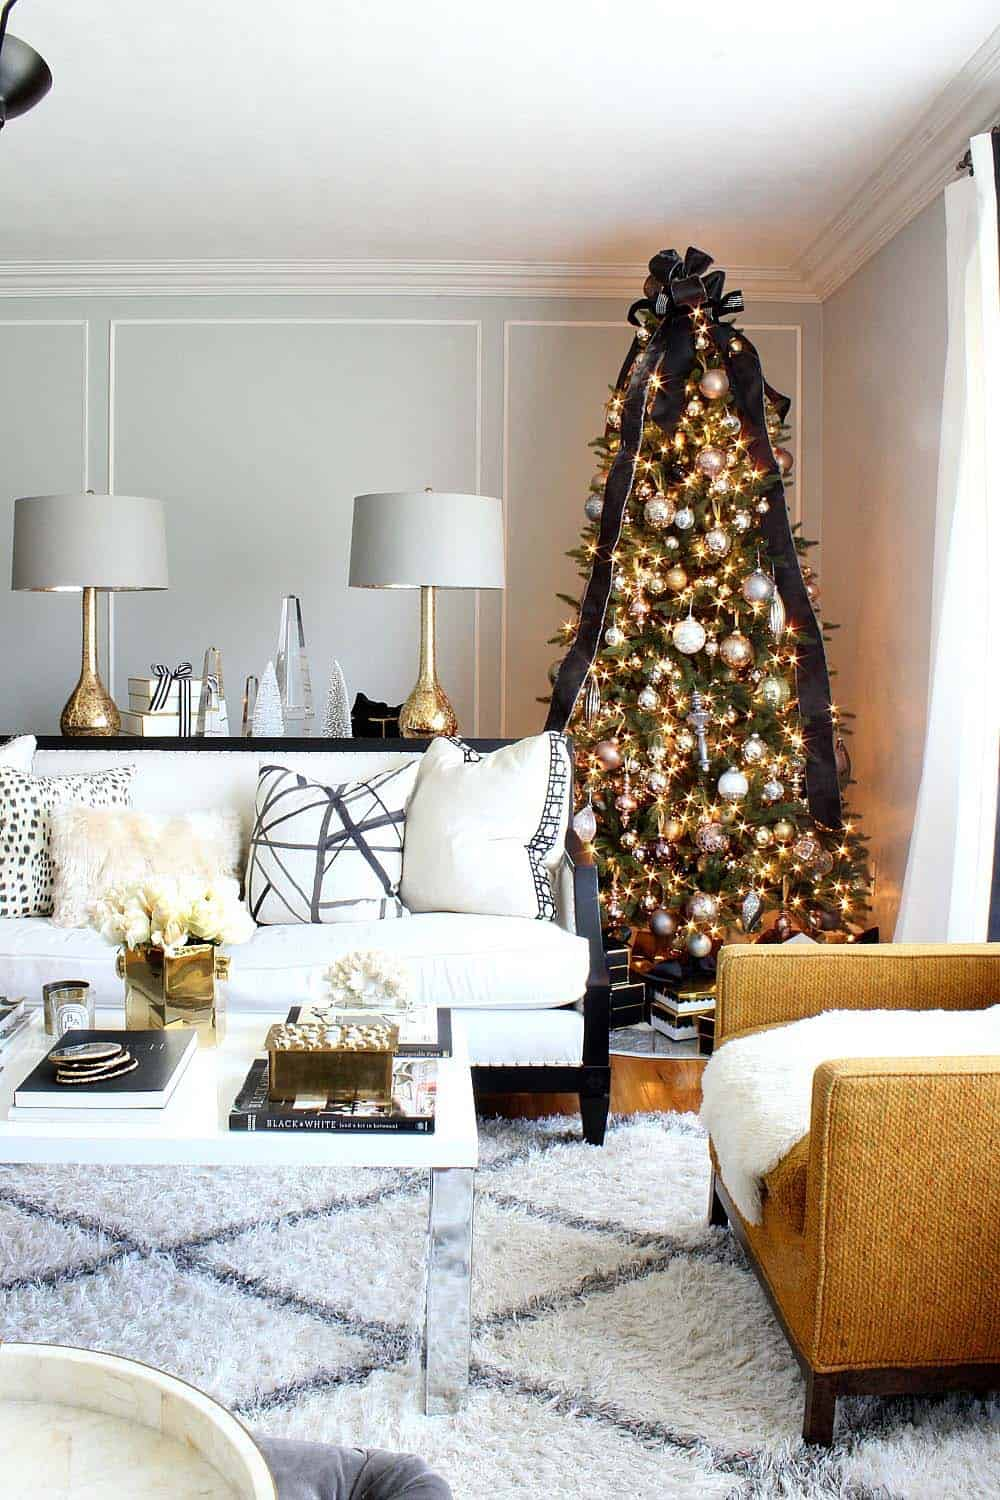 Amazing Christmas Decorated Trees-22-1 Kindesign